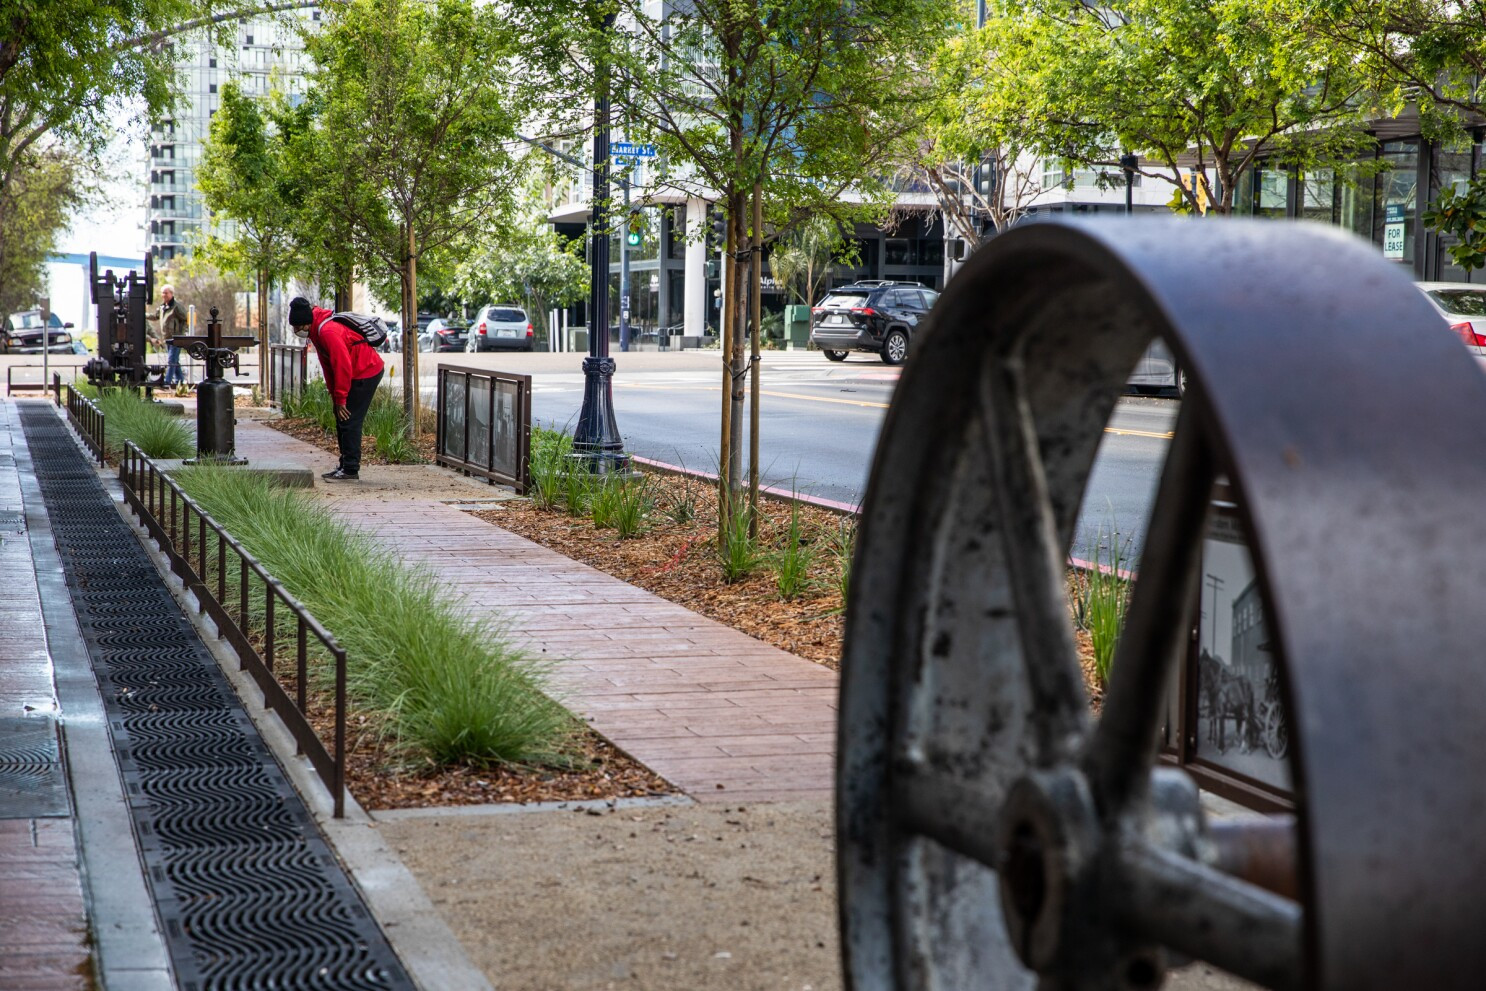 East Village 'greenway,' the first of many, replaces road with urban park -  The San Diego Union-Tribune